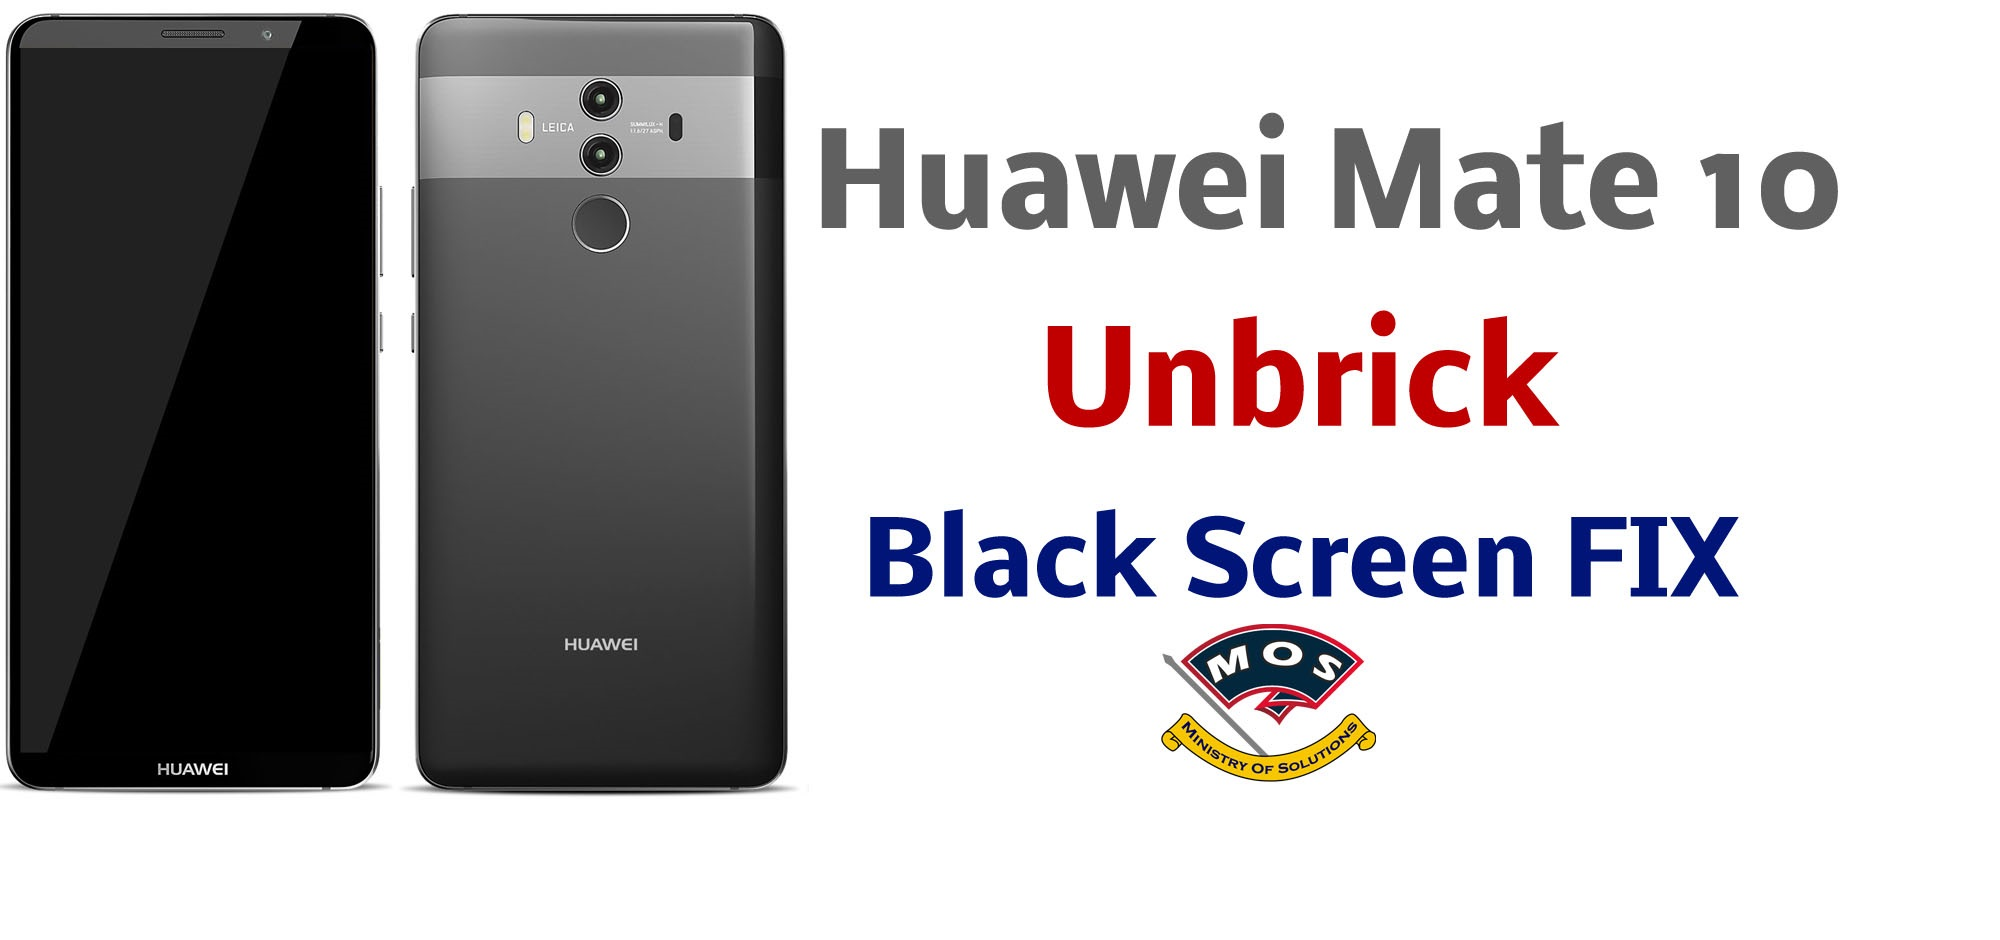 Huawei Mate 10 unbrick (Black Screen Dead Fix) - Ministry Of Solutions